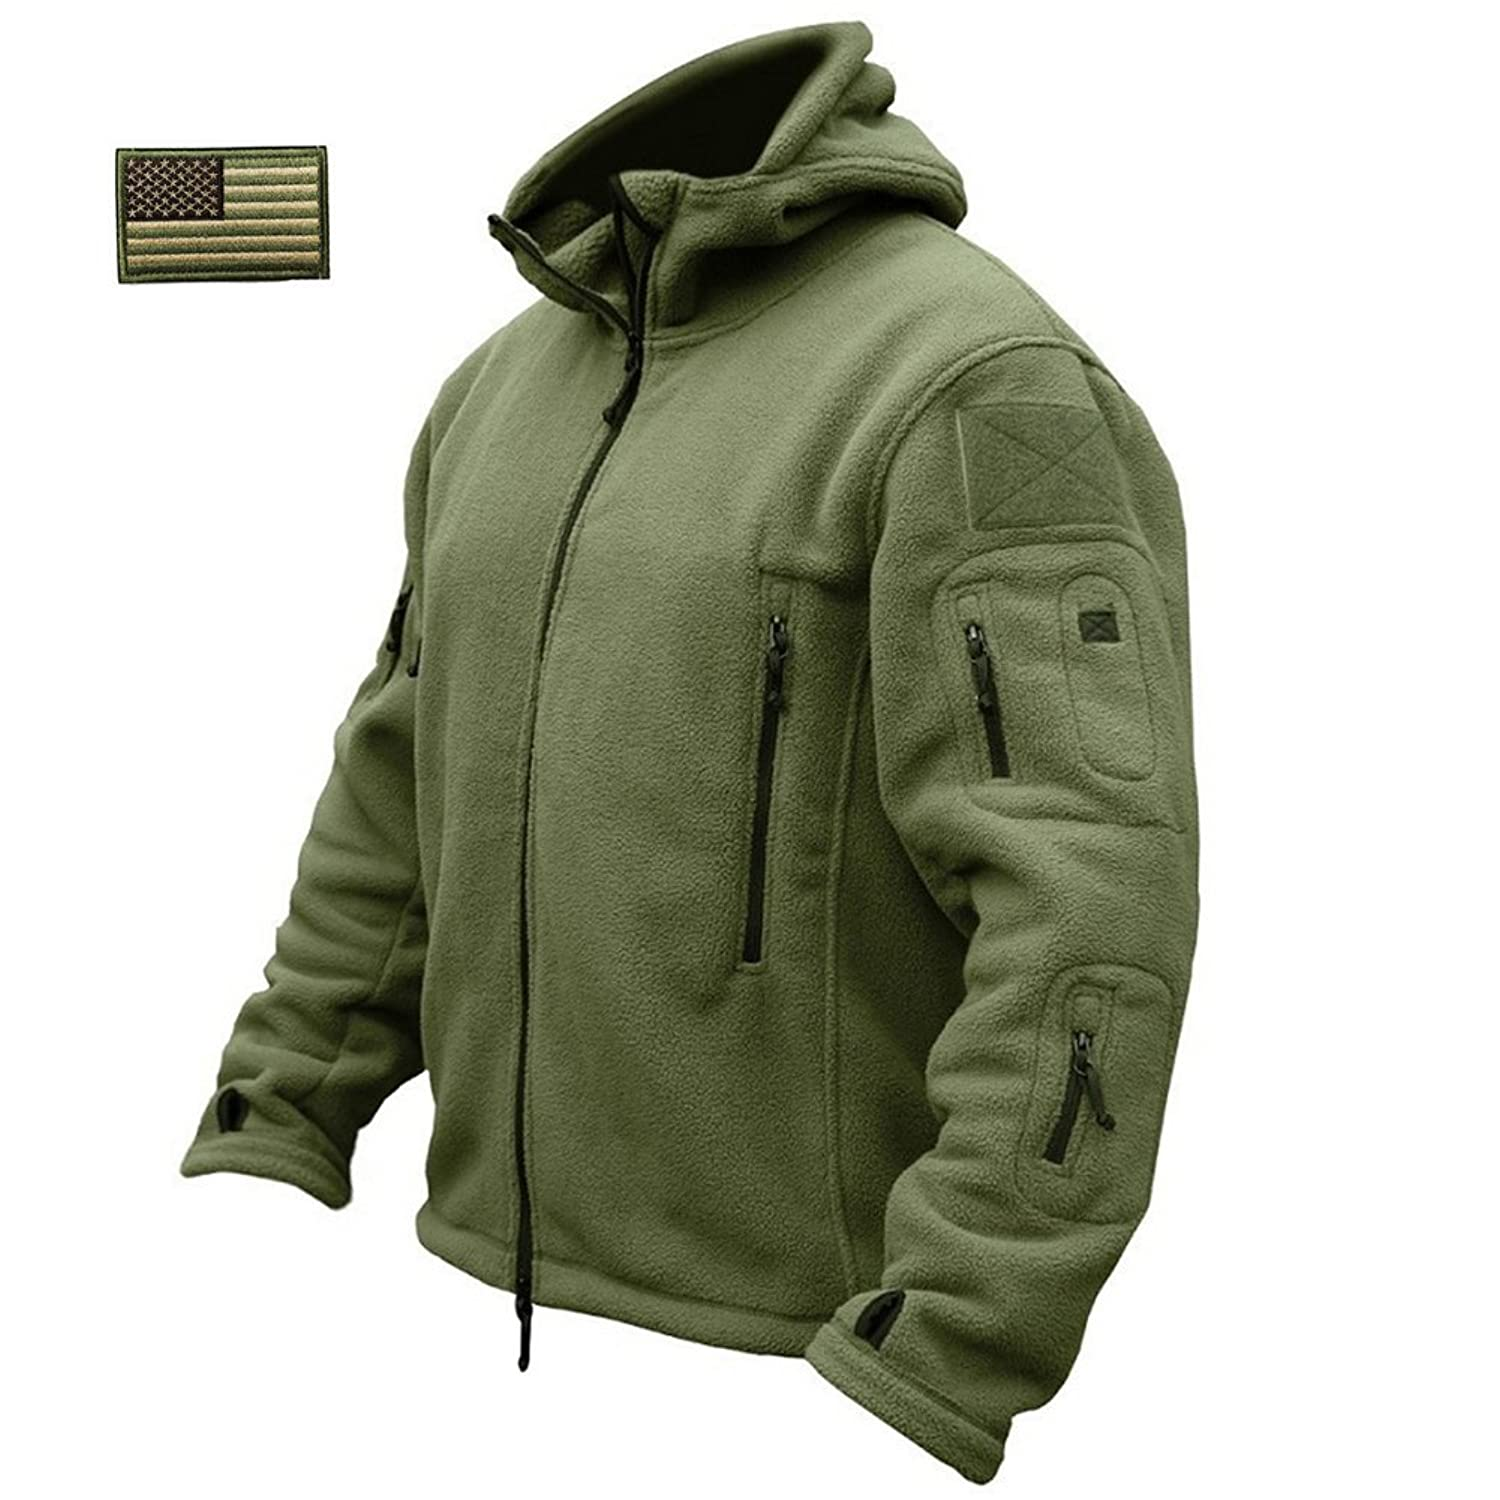 Amazon.com: ReFire Gear Men's Warm Military Tactical Sport Fleece ...